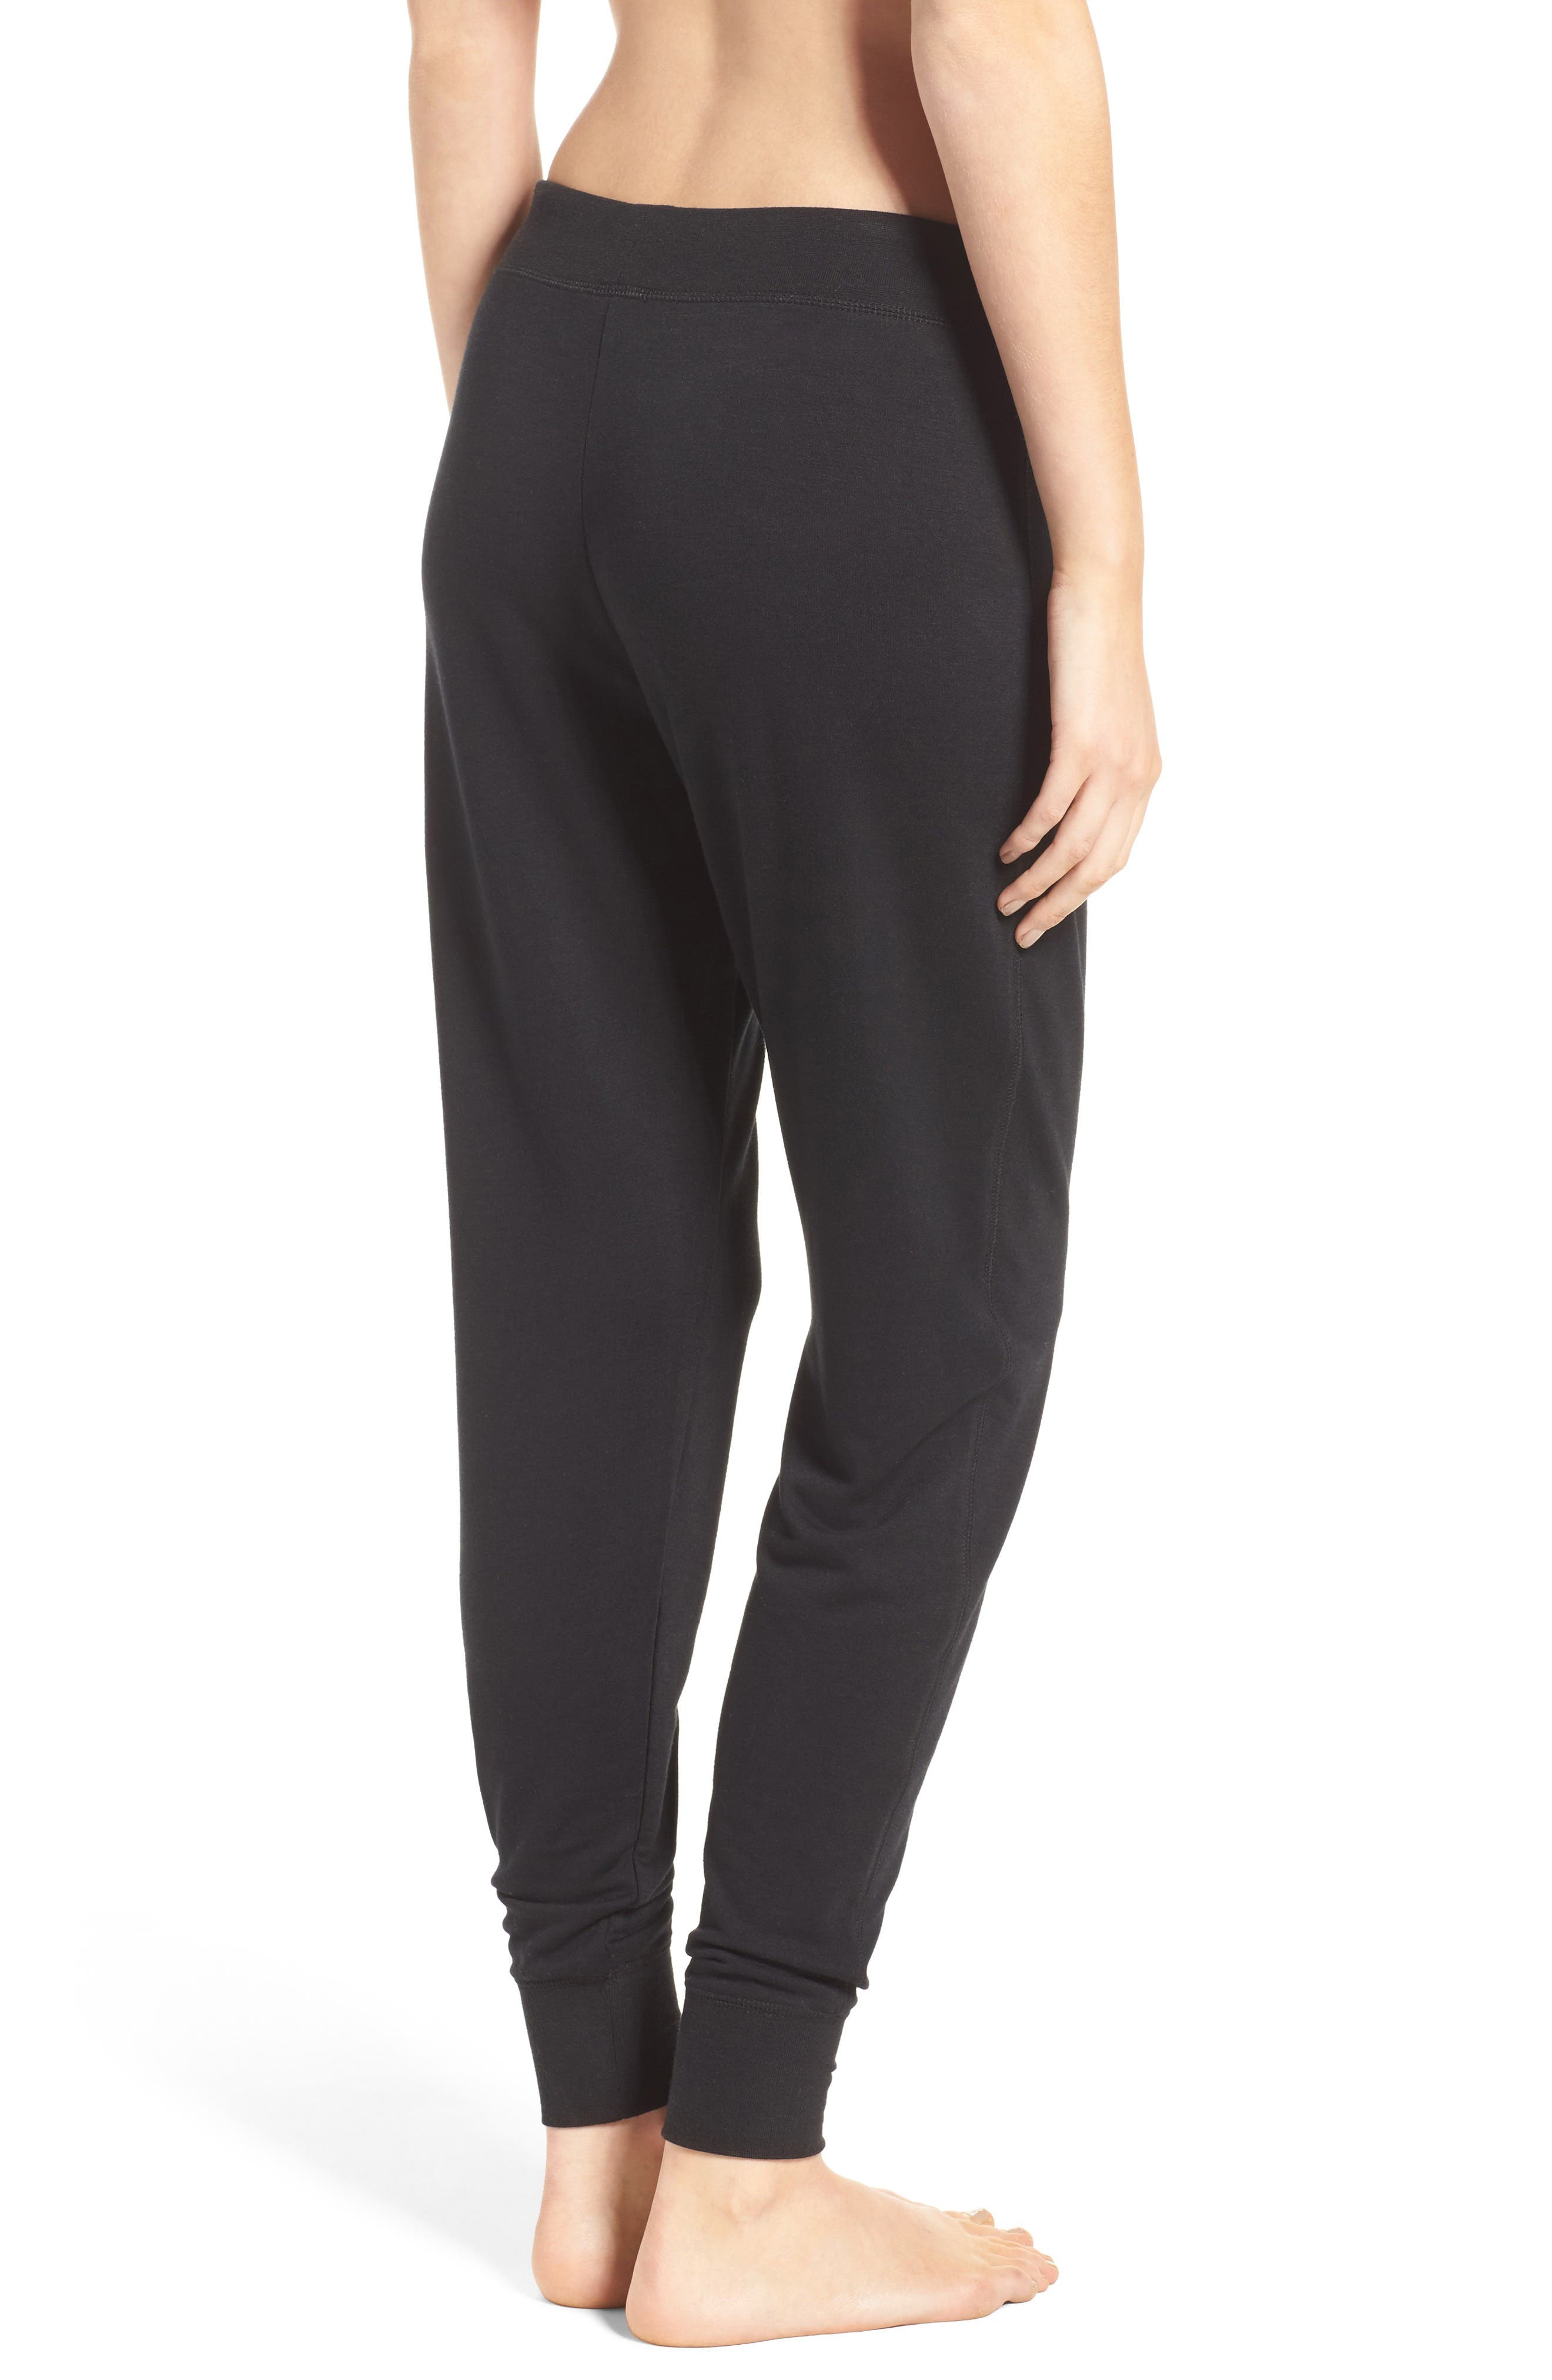 All About It Lounge Pants,                             Alternate thumbnail 12, color,